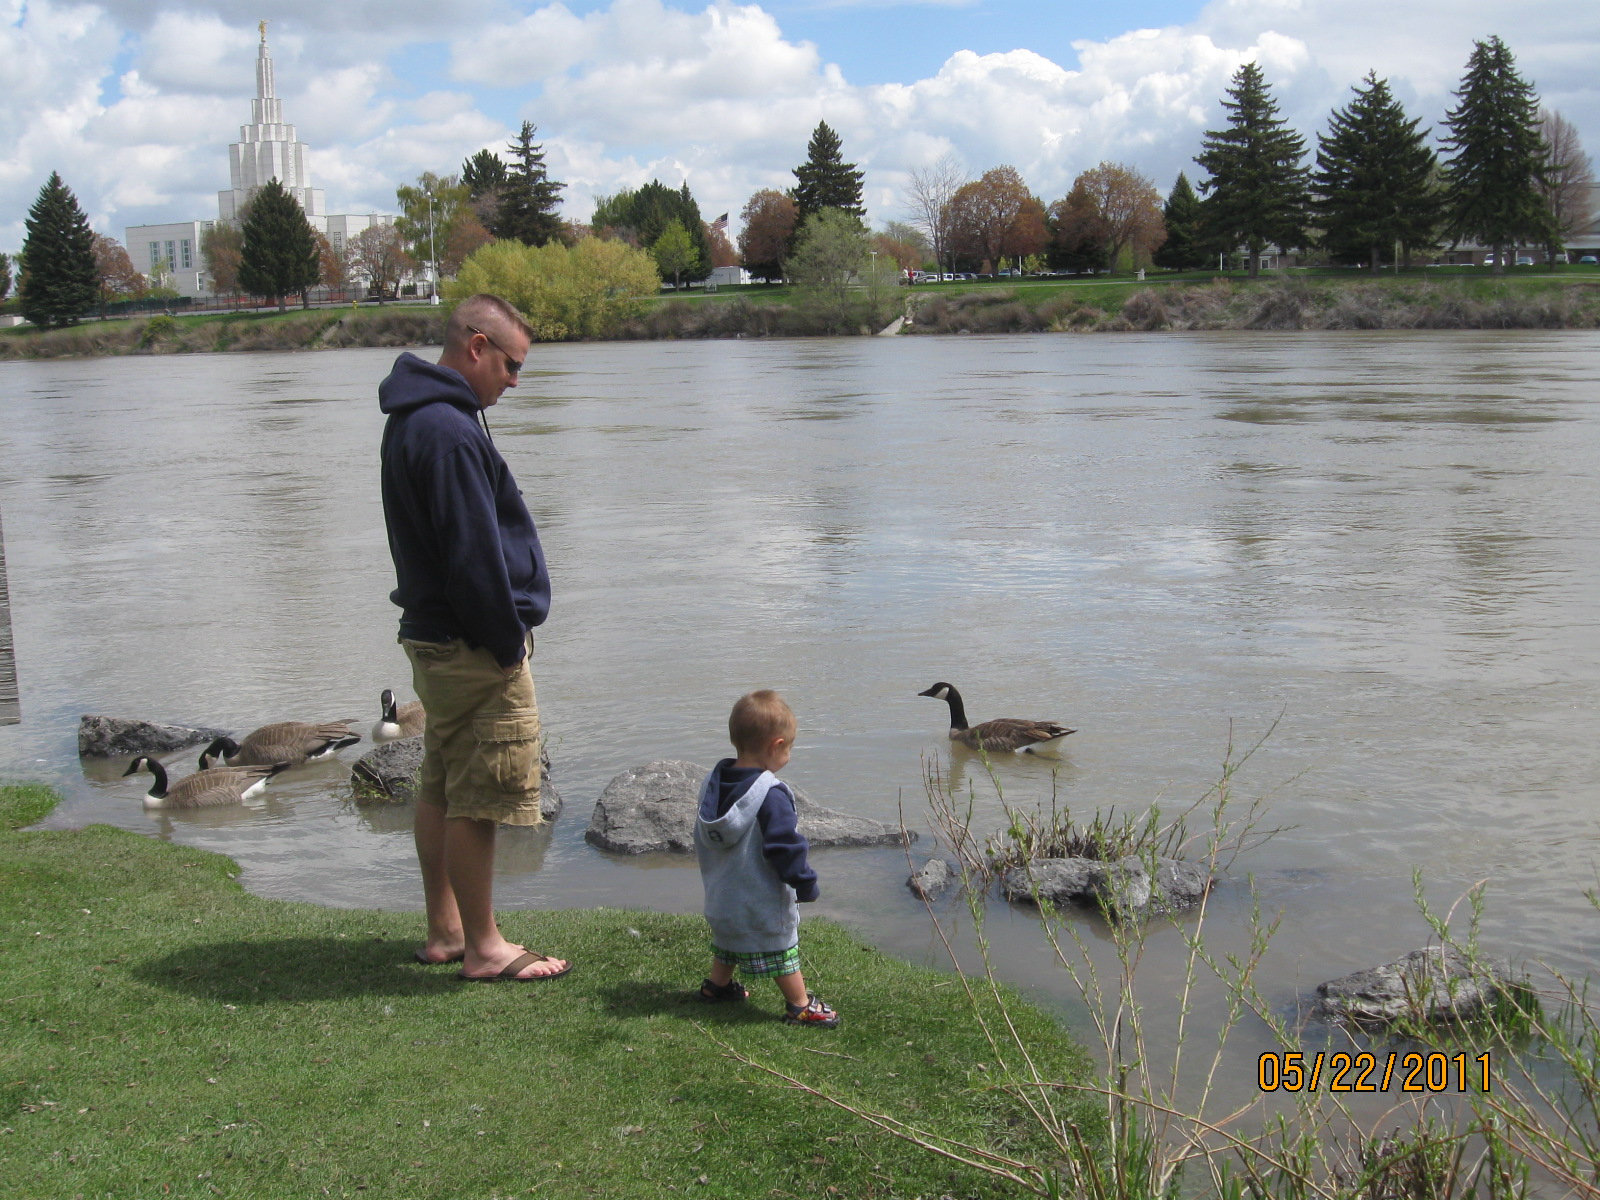 ... walked on the greenbelt and looked at the Idaho falls Temple and water falls. The kids got to feed the geese and they thought that was so much fun.